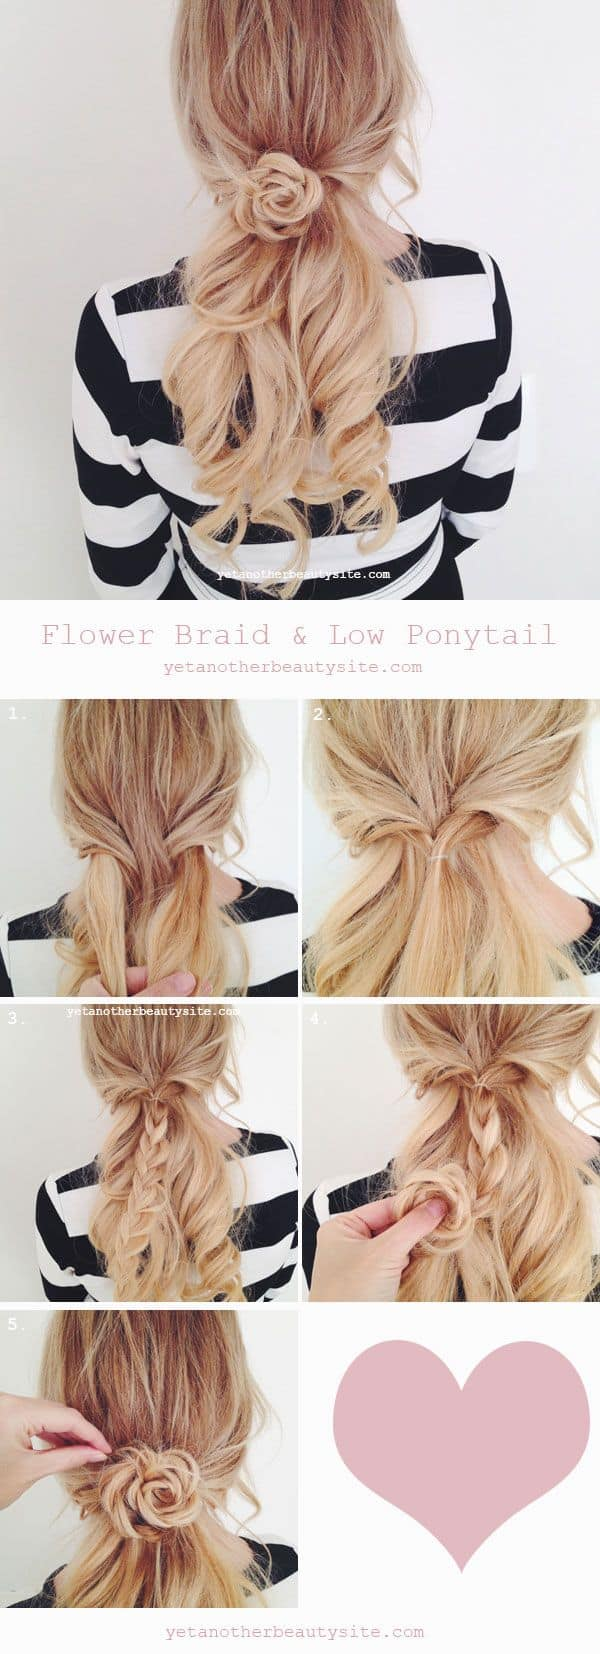 flower-braid-hairstyle